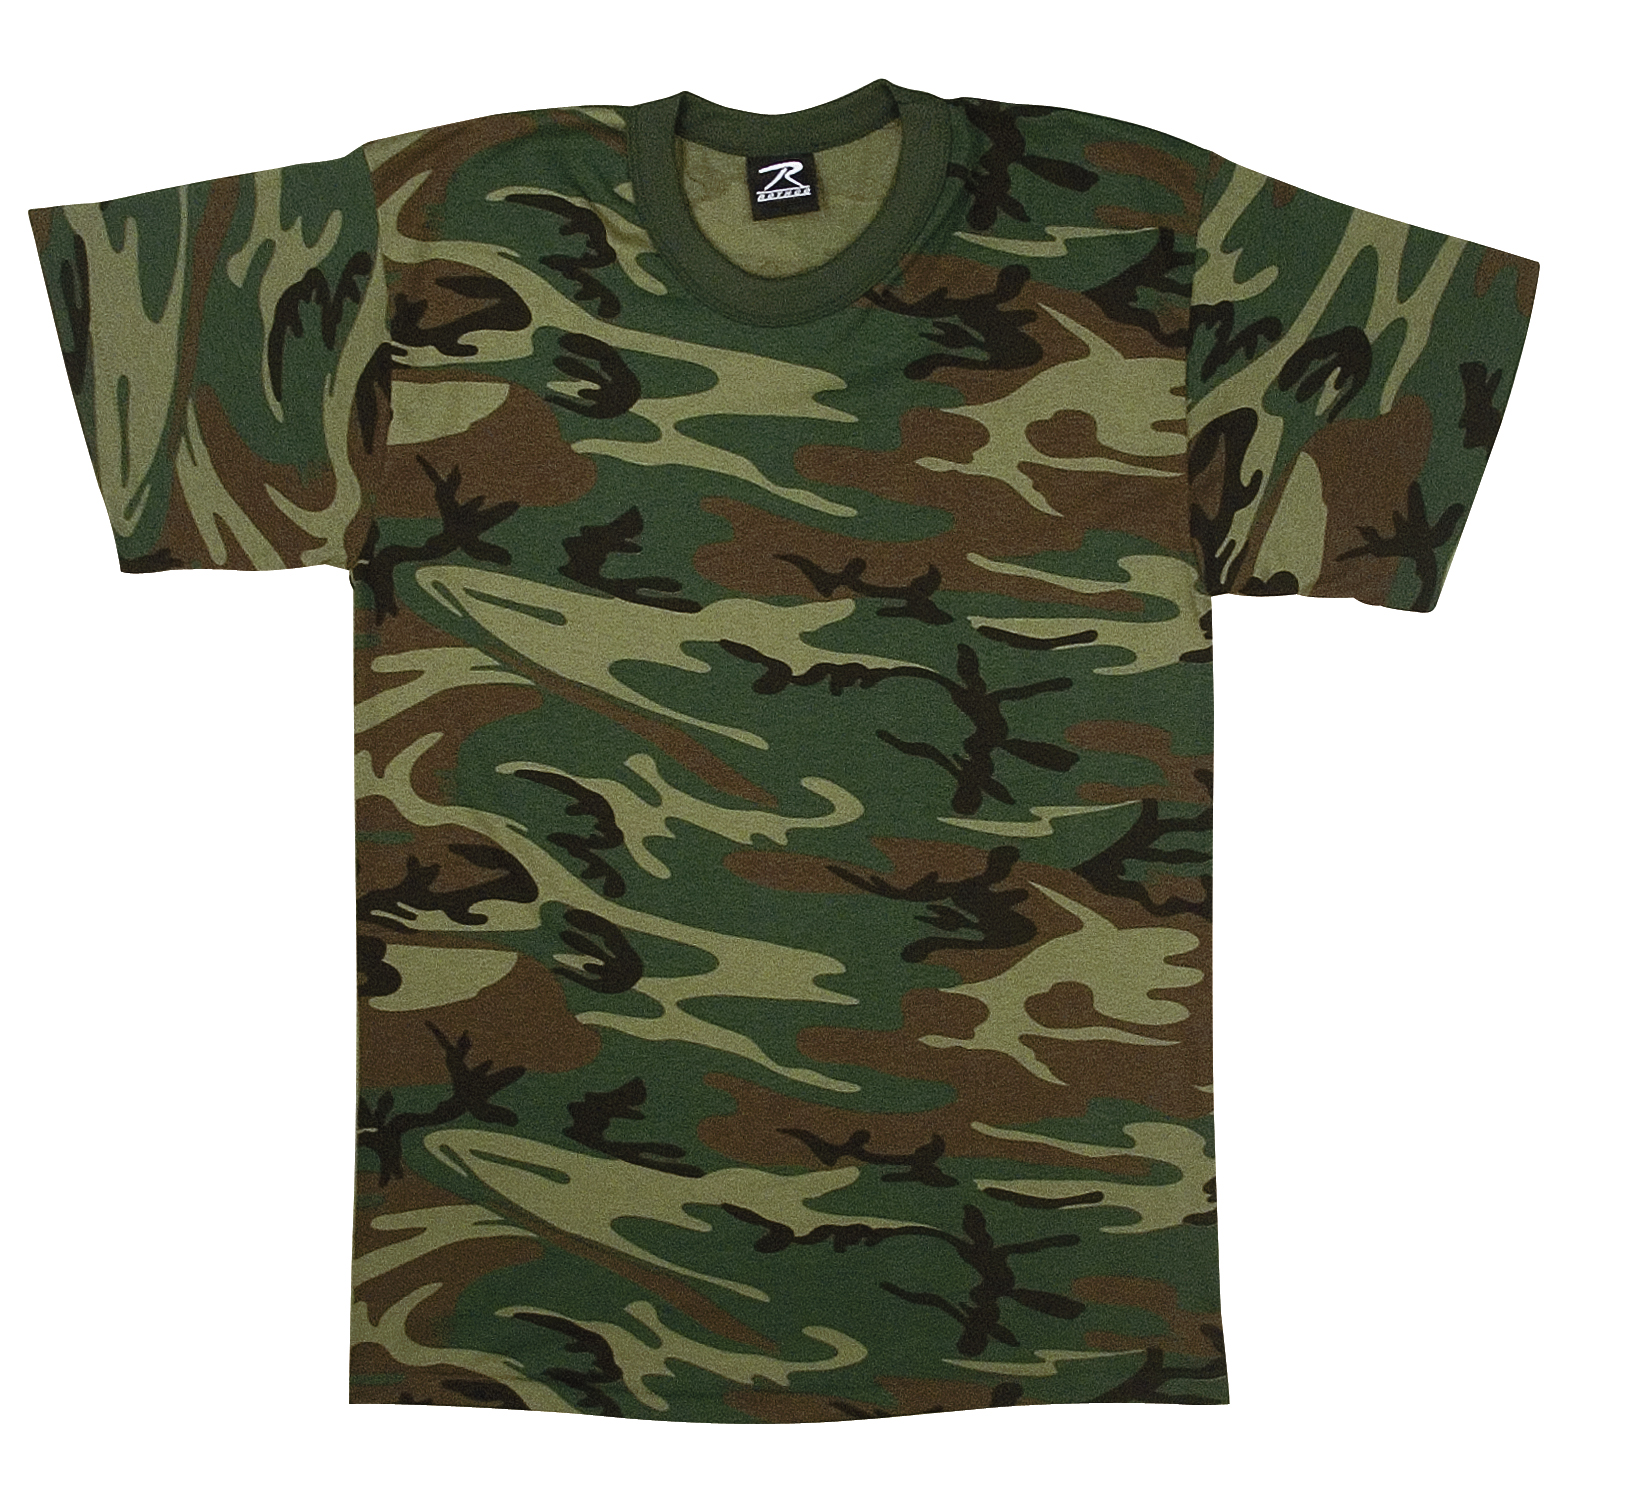 woodland camo u s made t shirt features woodland camouflage t shirt. Black Bedroom Furniture Sets. Home Design Ideas